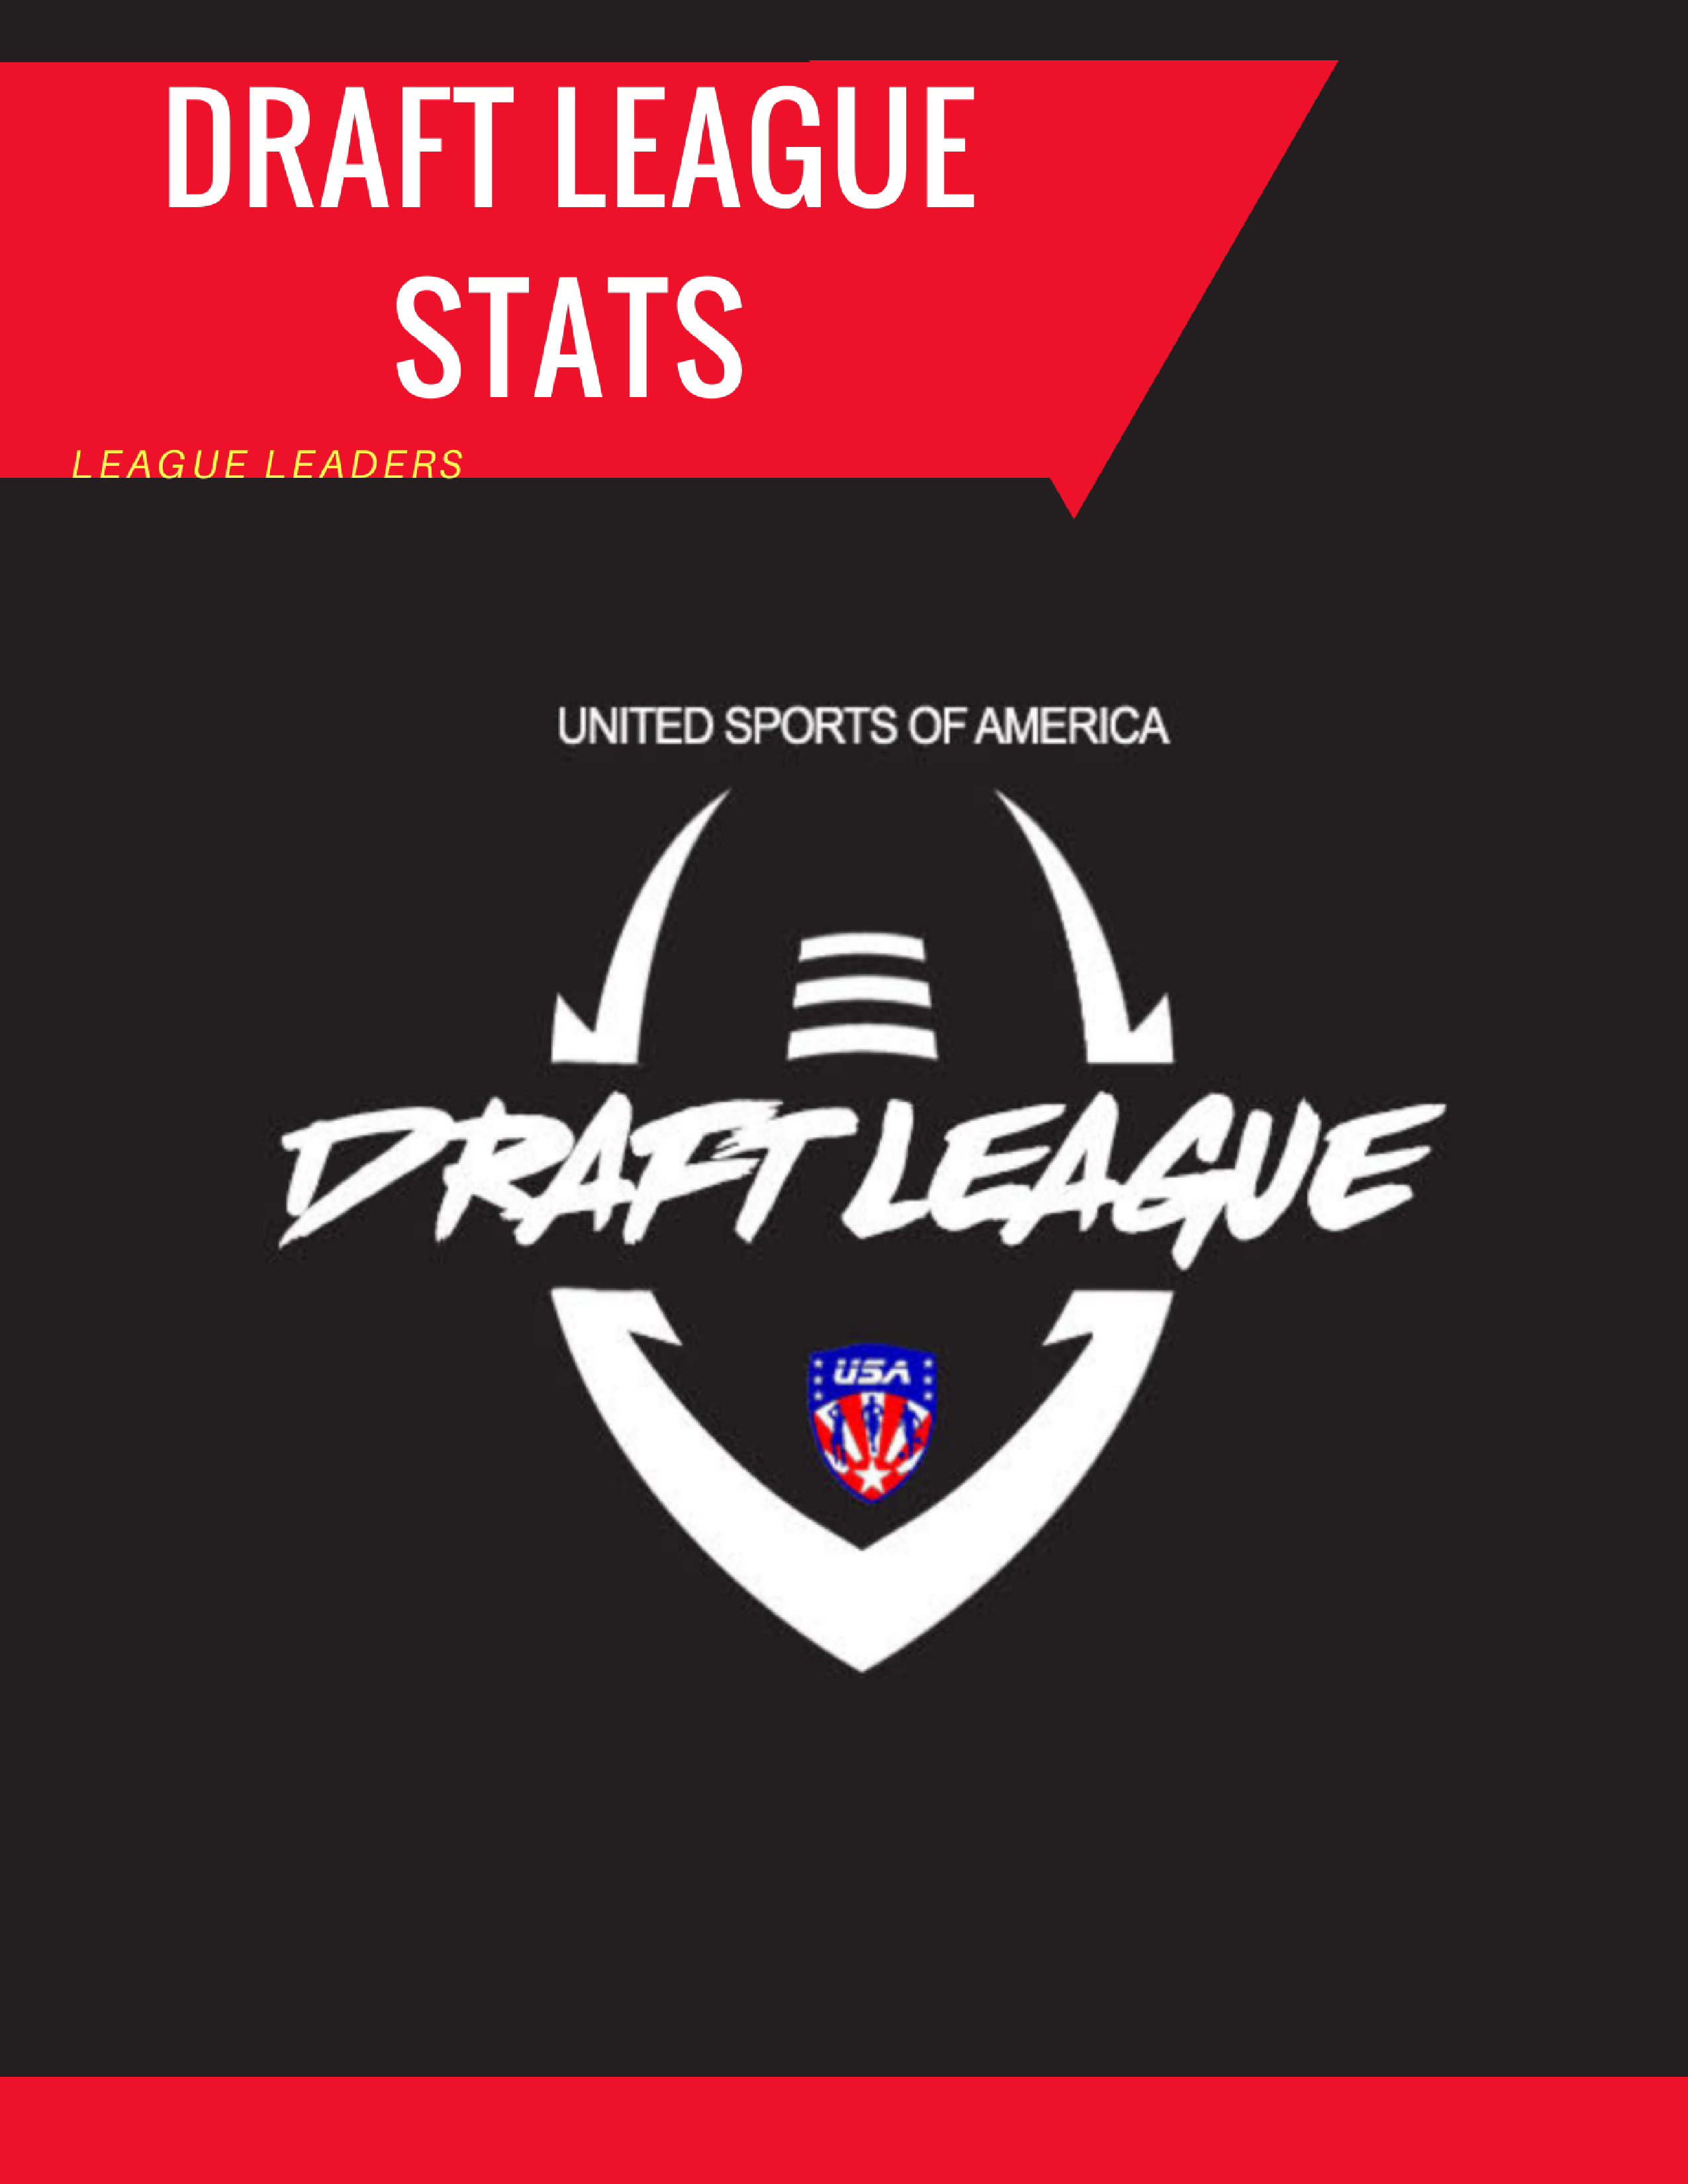 Draft League Stats